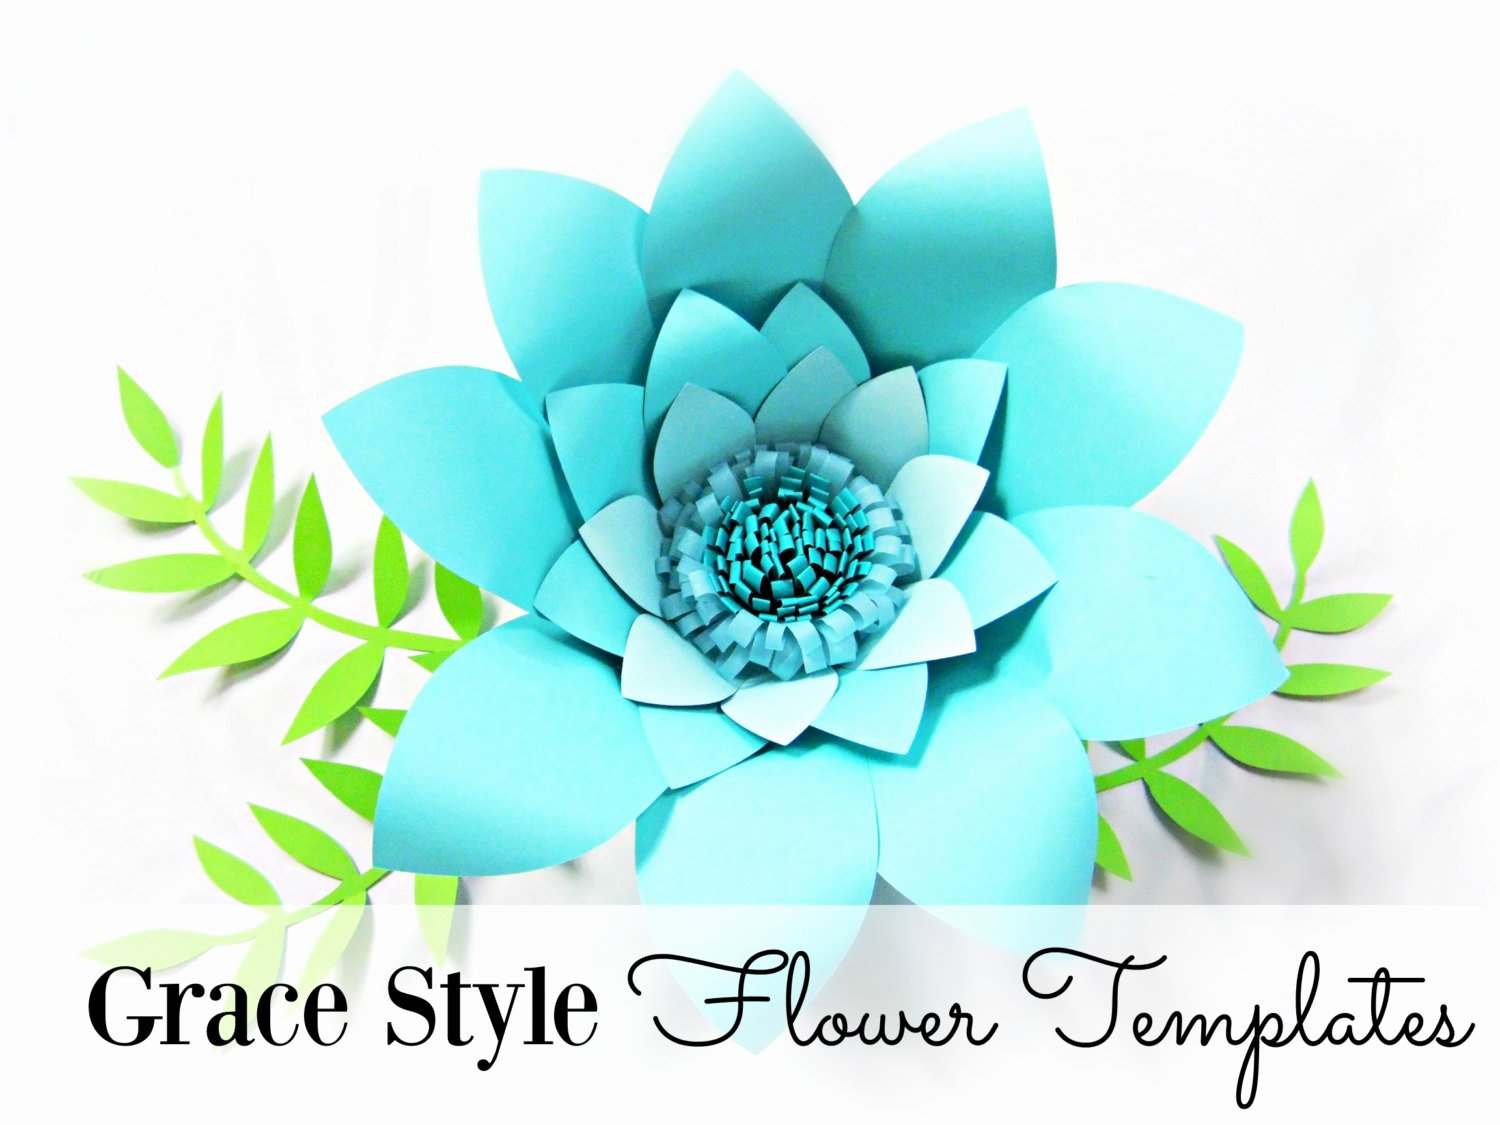 Diy Paper Flower Template Lovely Diy Templates Flower Templates Paper Flower Kit Diy Paper